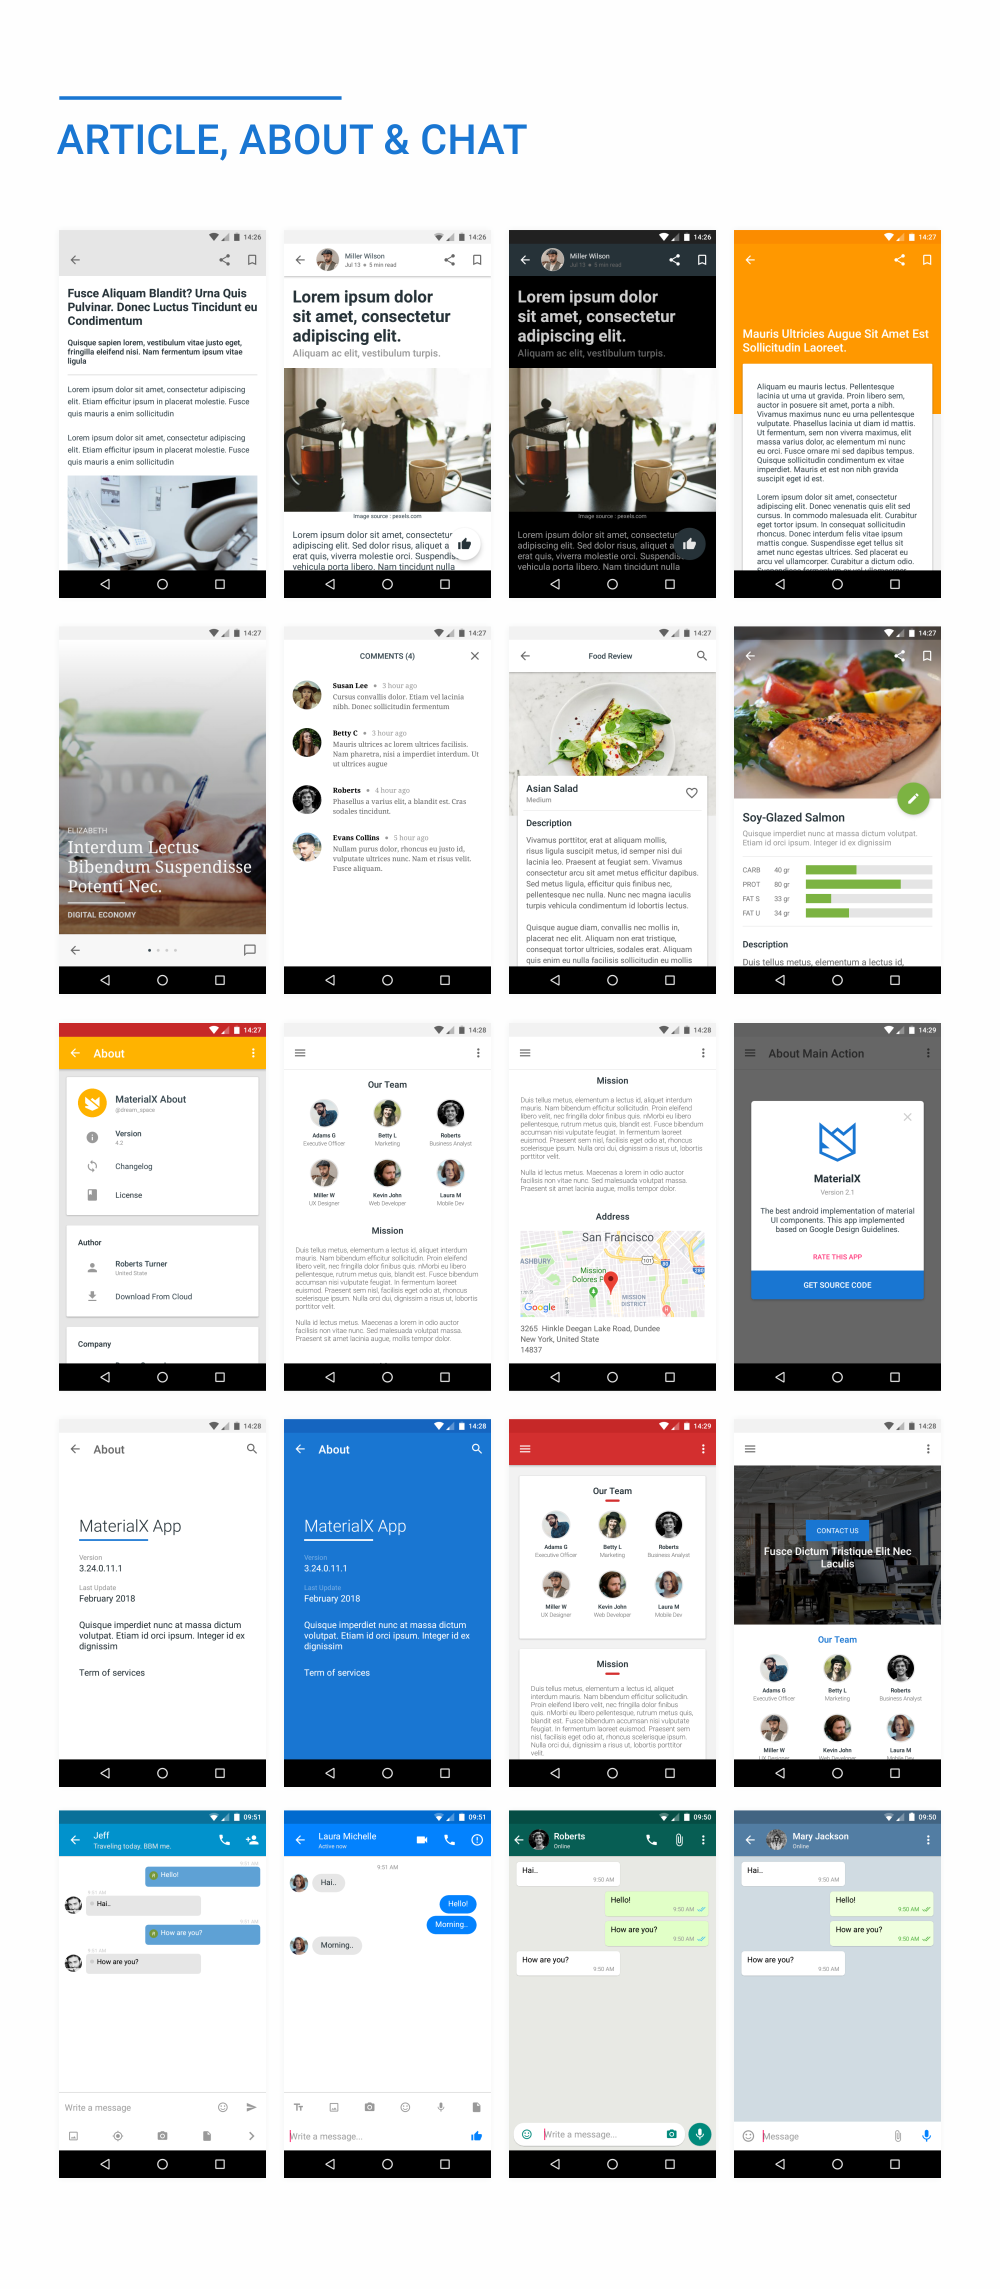 MaterialX - Android Material Design UI Components 2.5 - 48